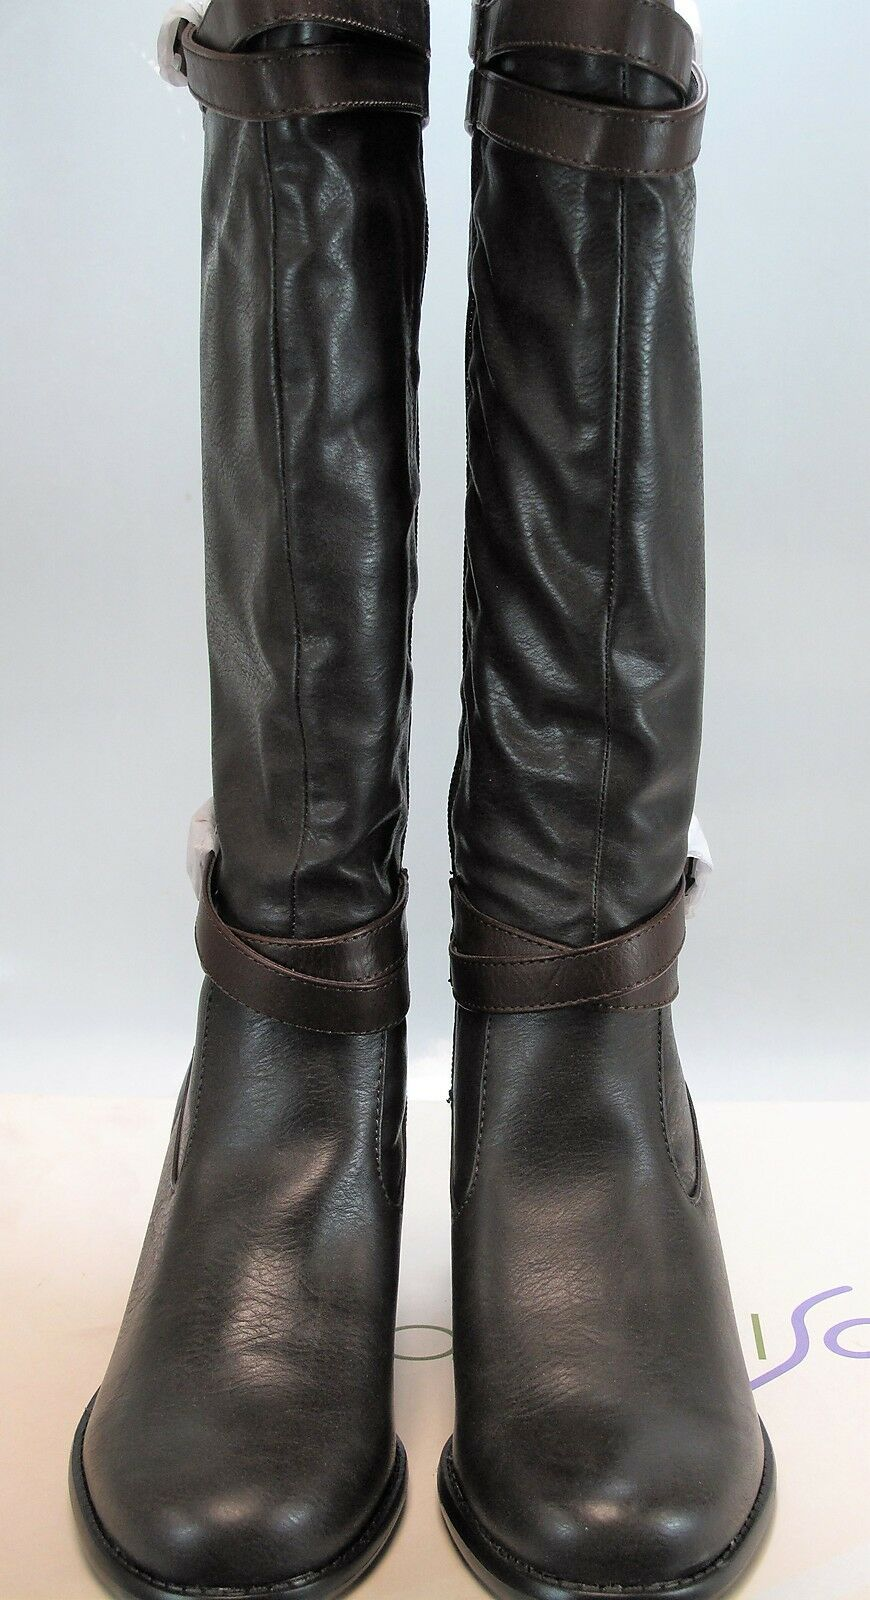 NATURAL SOUL Women's SACRED Brown Leather Tall Boots US 7 M, UK 5 NEW IN BOX